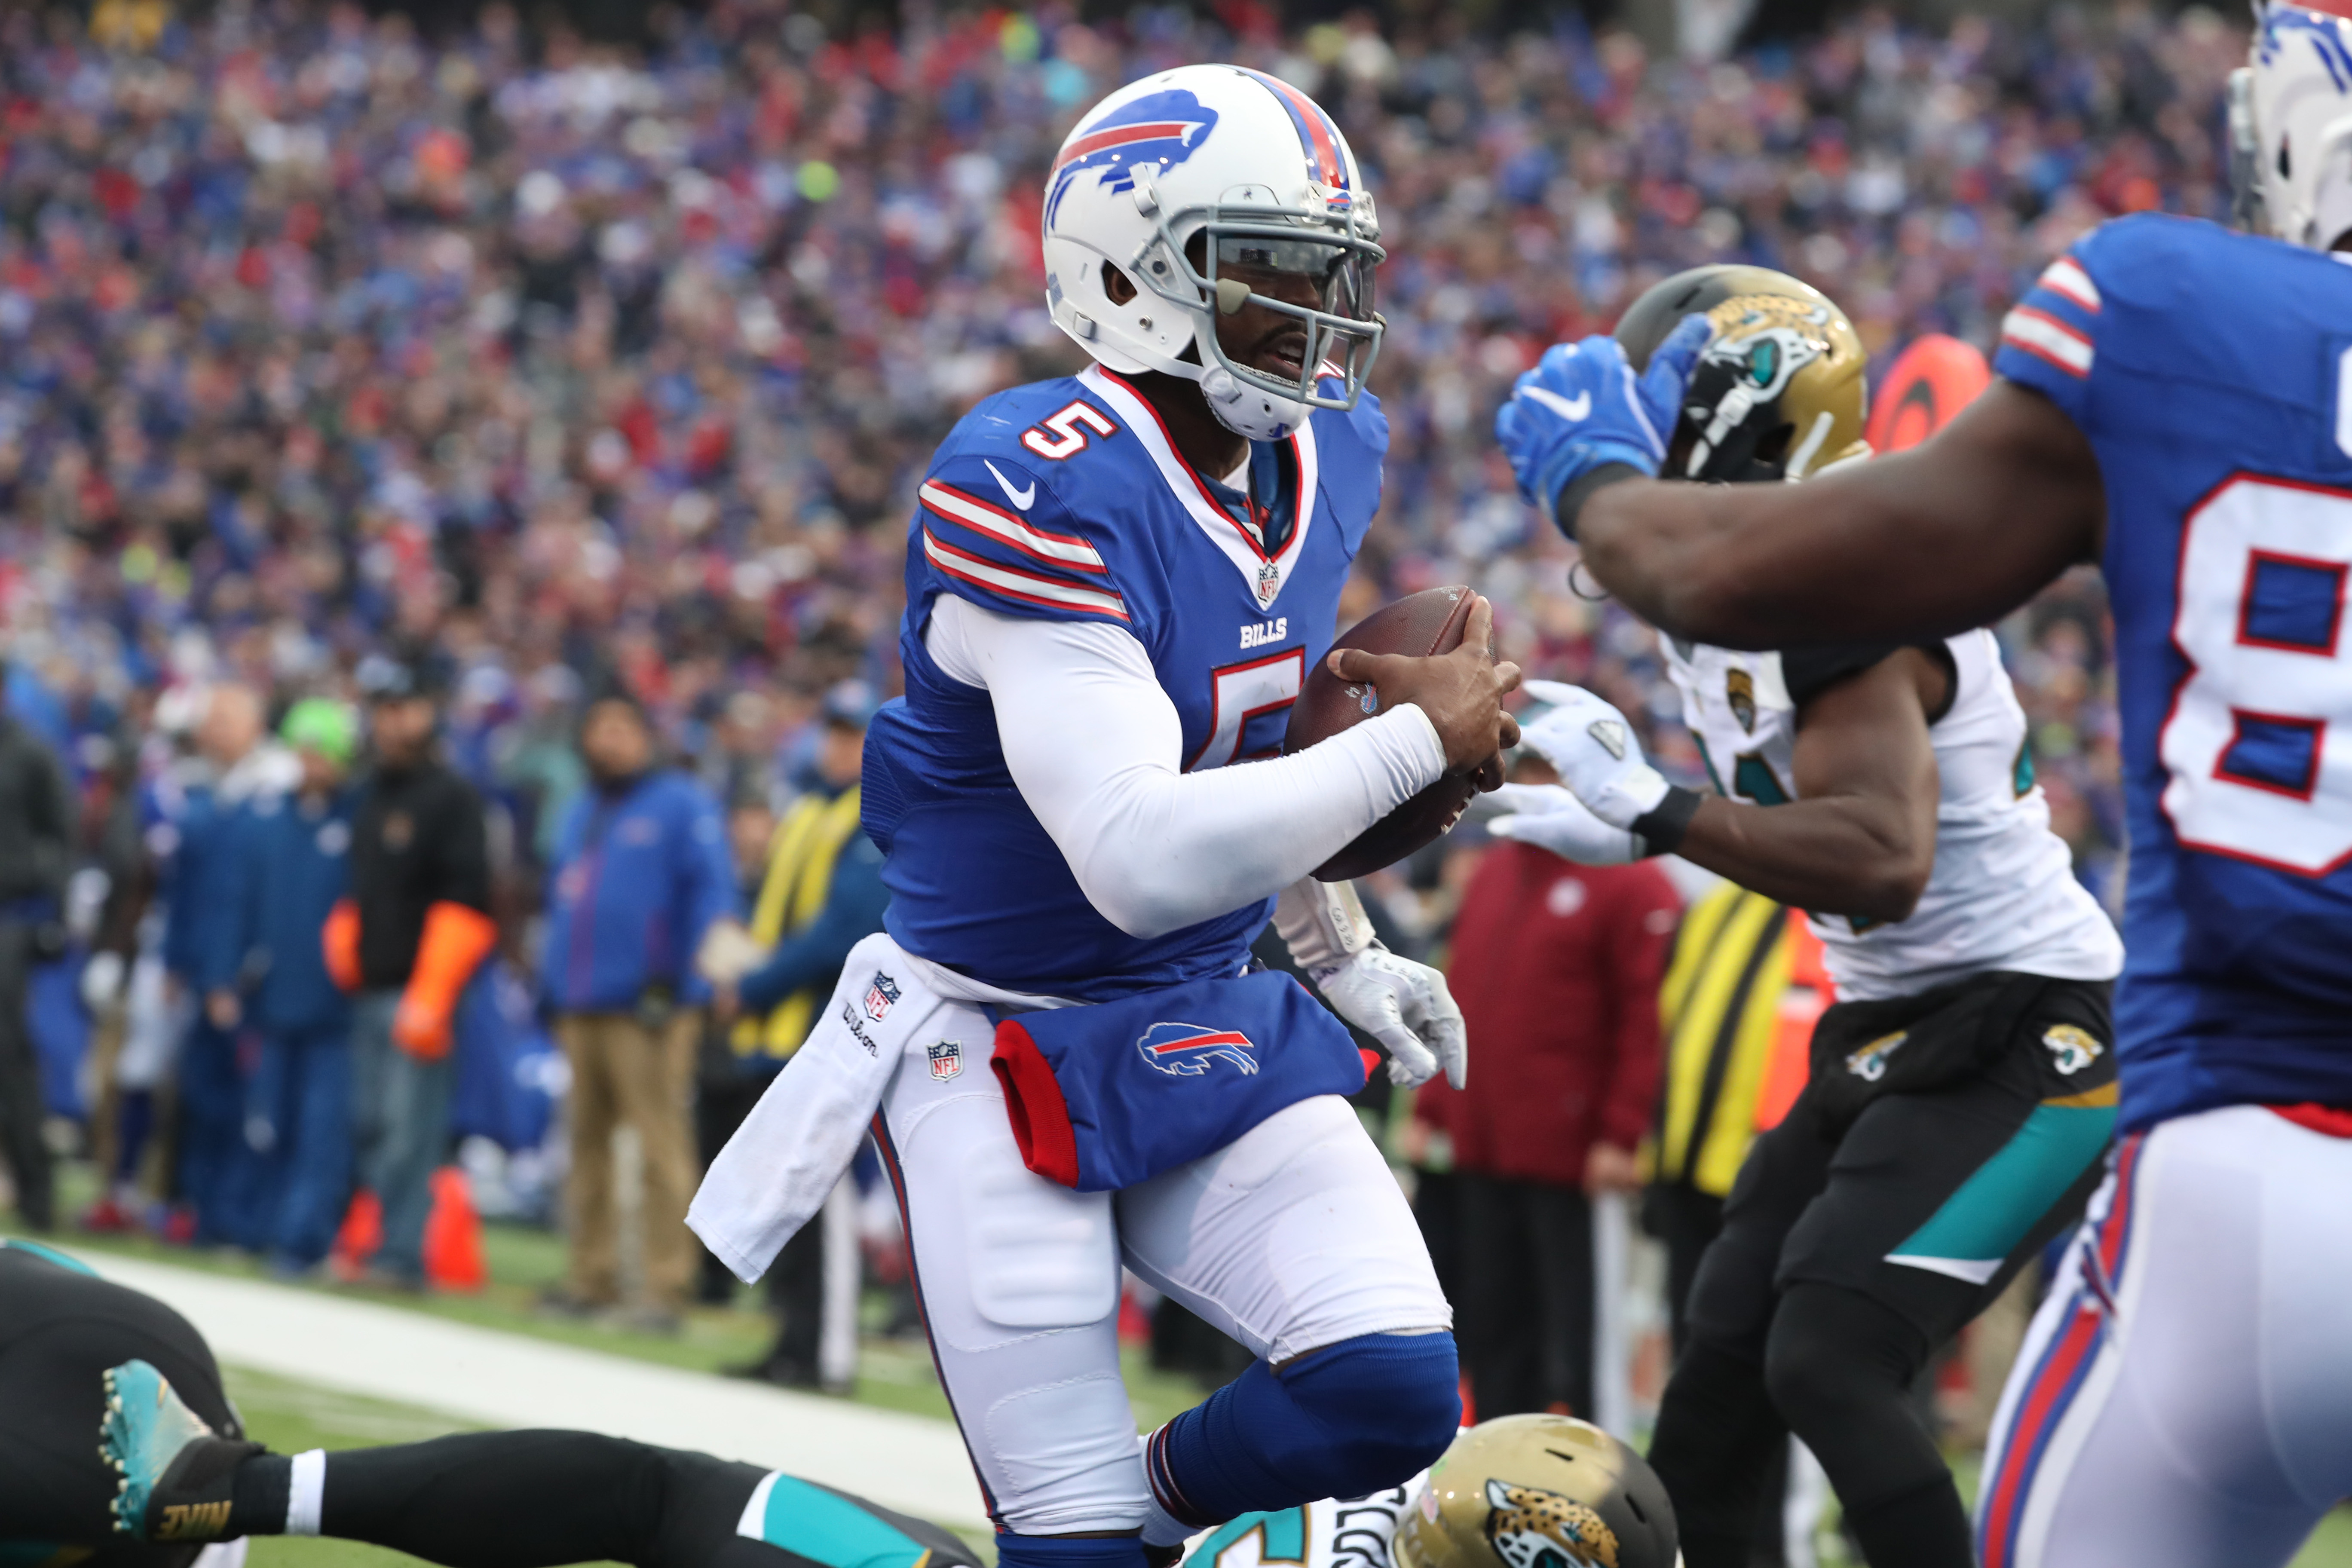 Bills quarterback Tyrod Taylor scores a touchdown against Jacksonville in the Nov. 27 win.